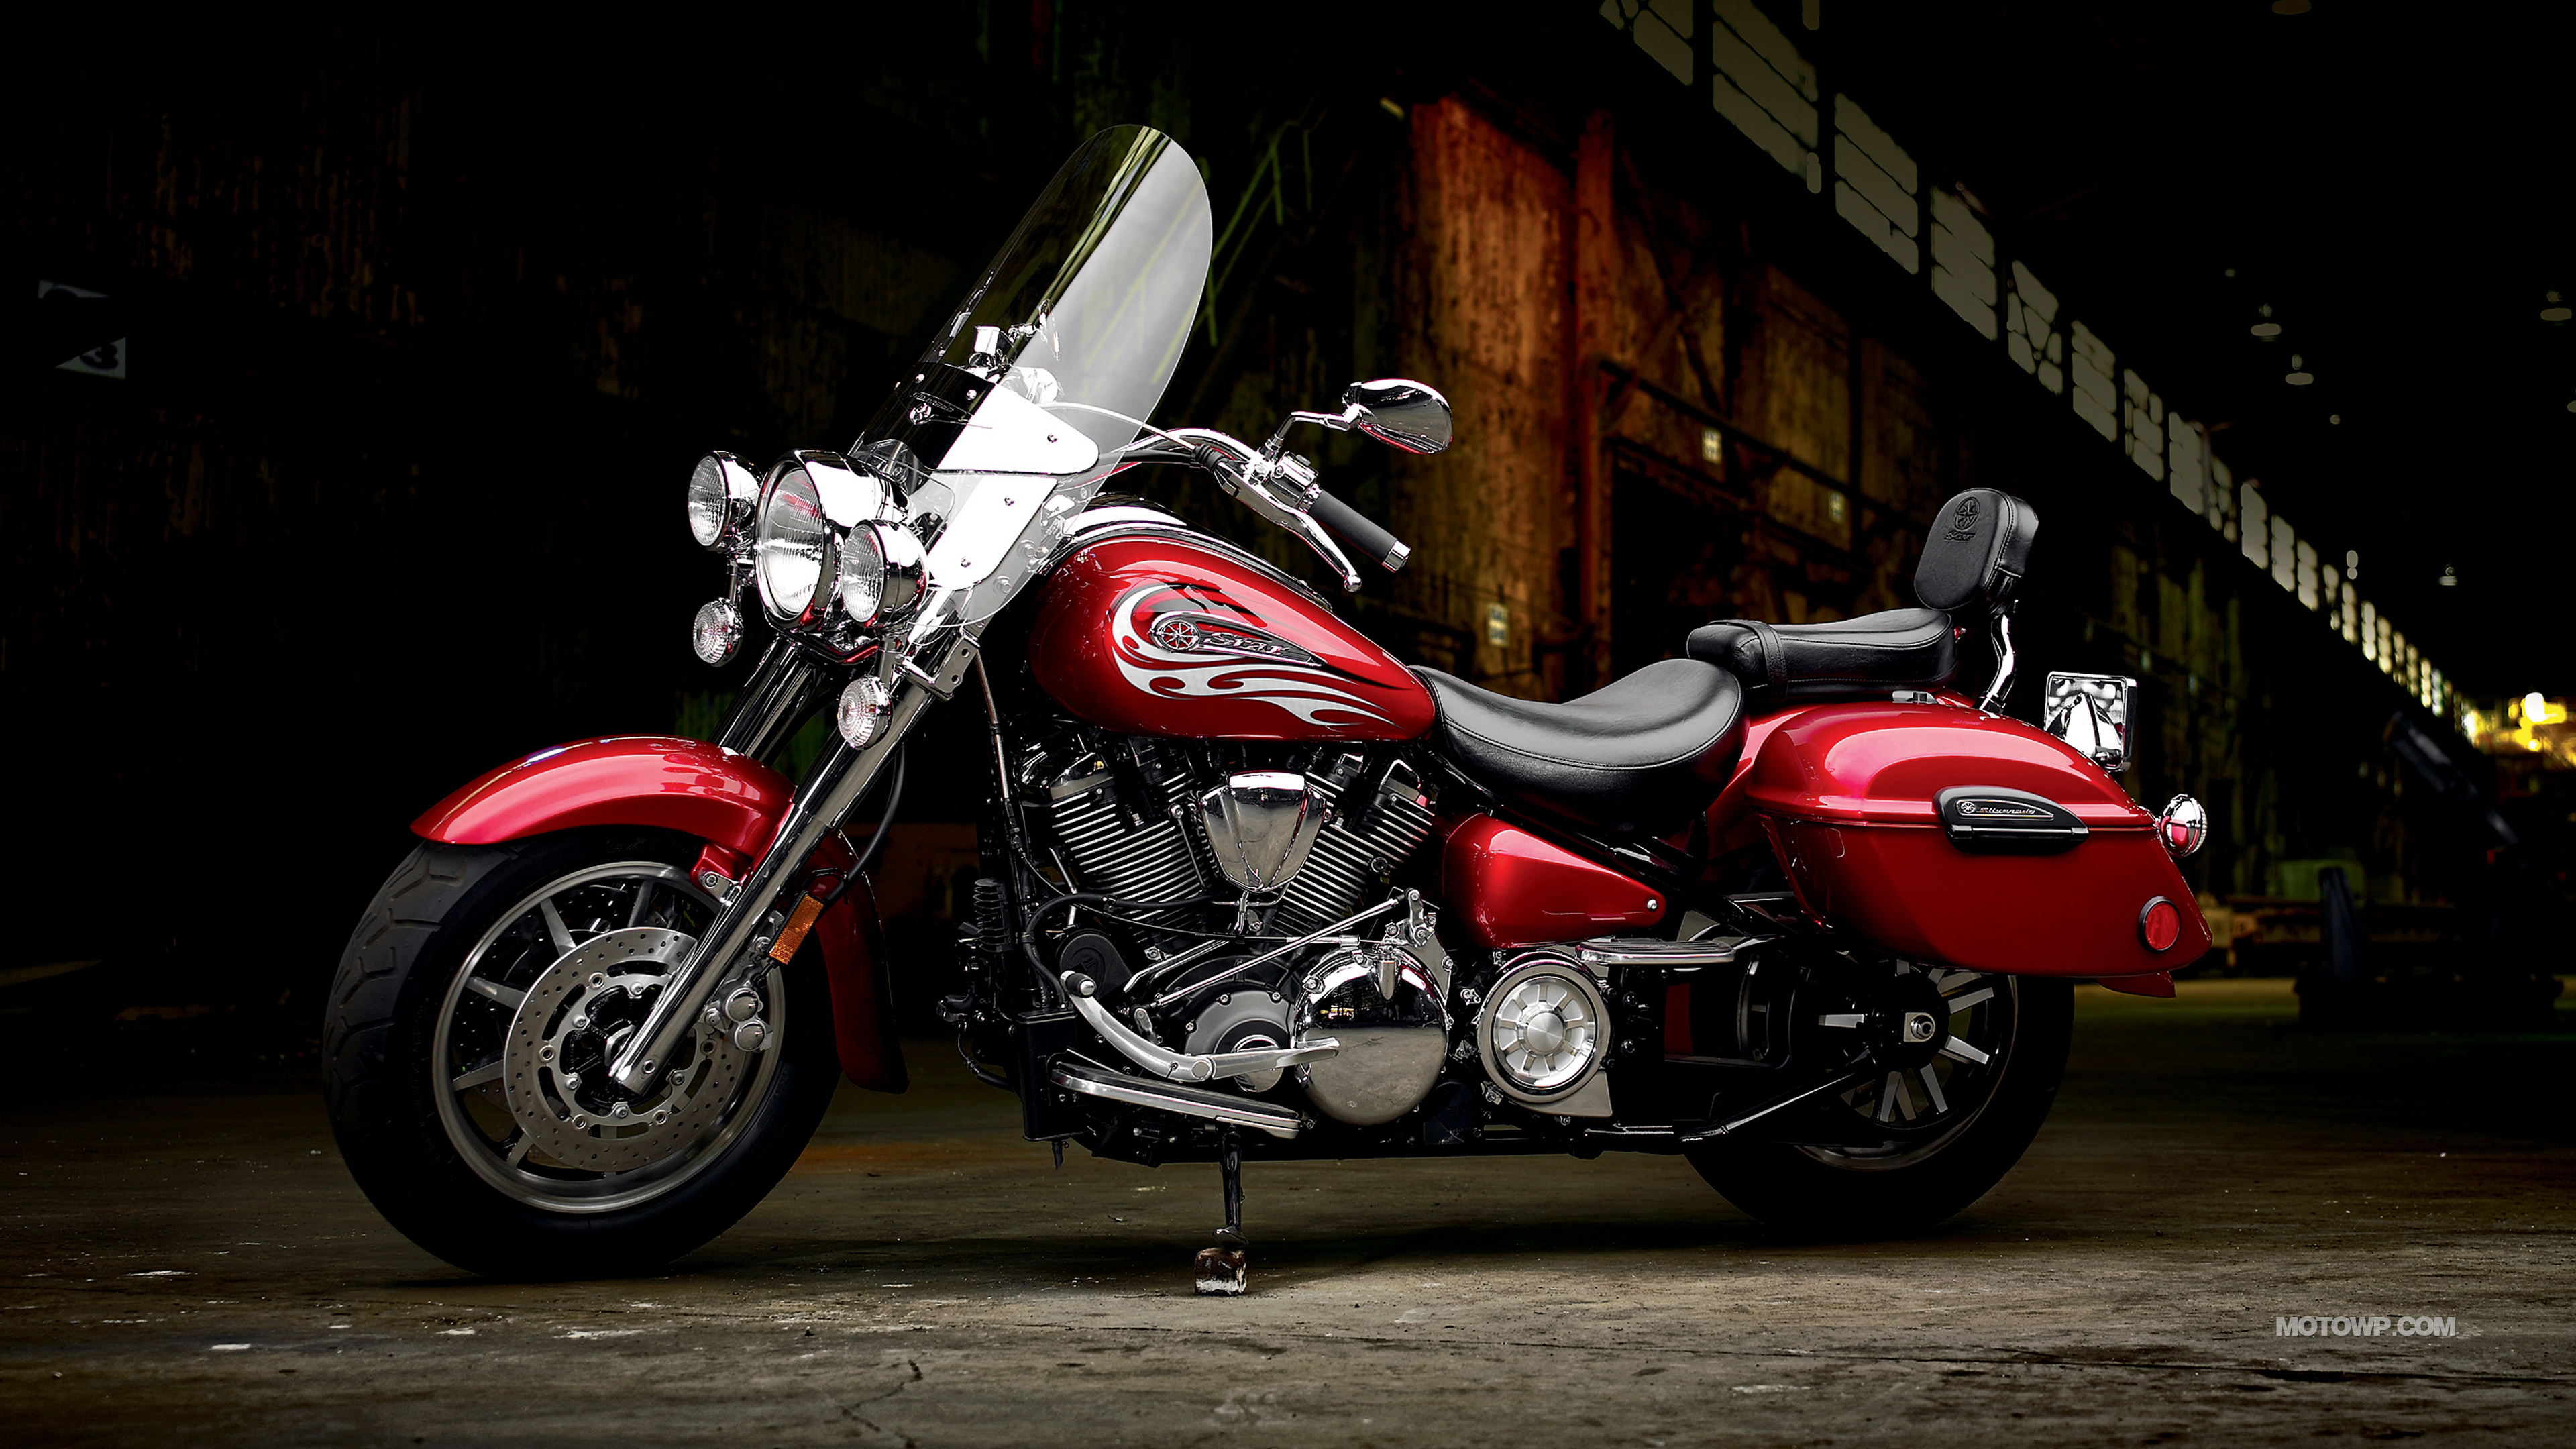 What Was The Last Year For Yamaha Road Star